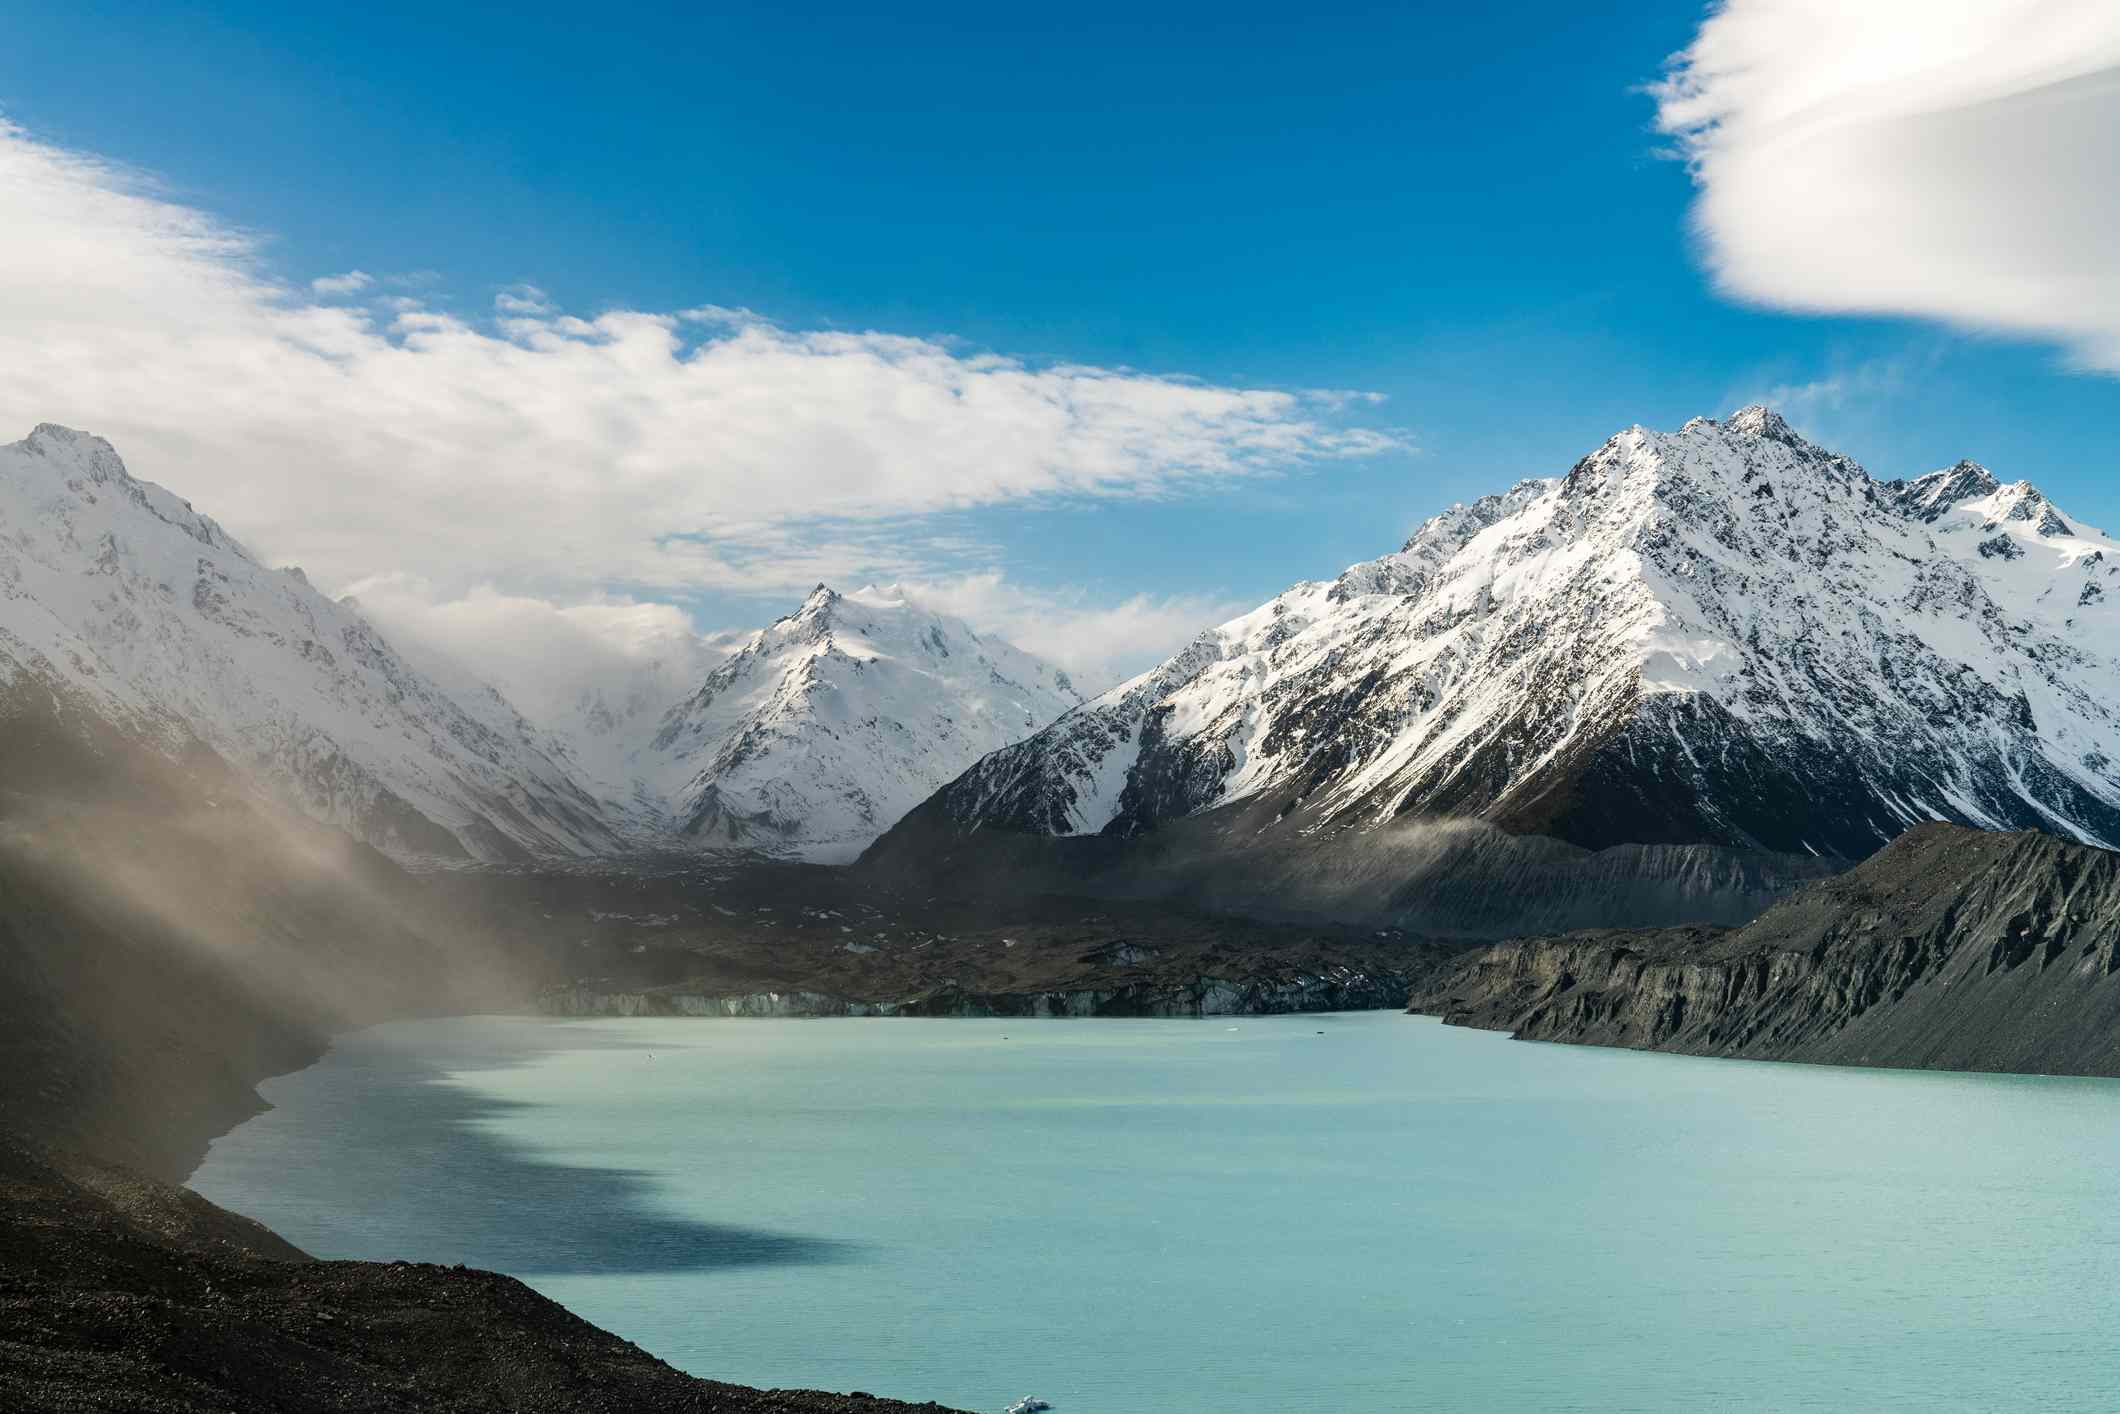 pale blue glacier lake surrounded by snowy mountains with mist in mid-ground